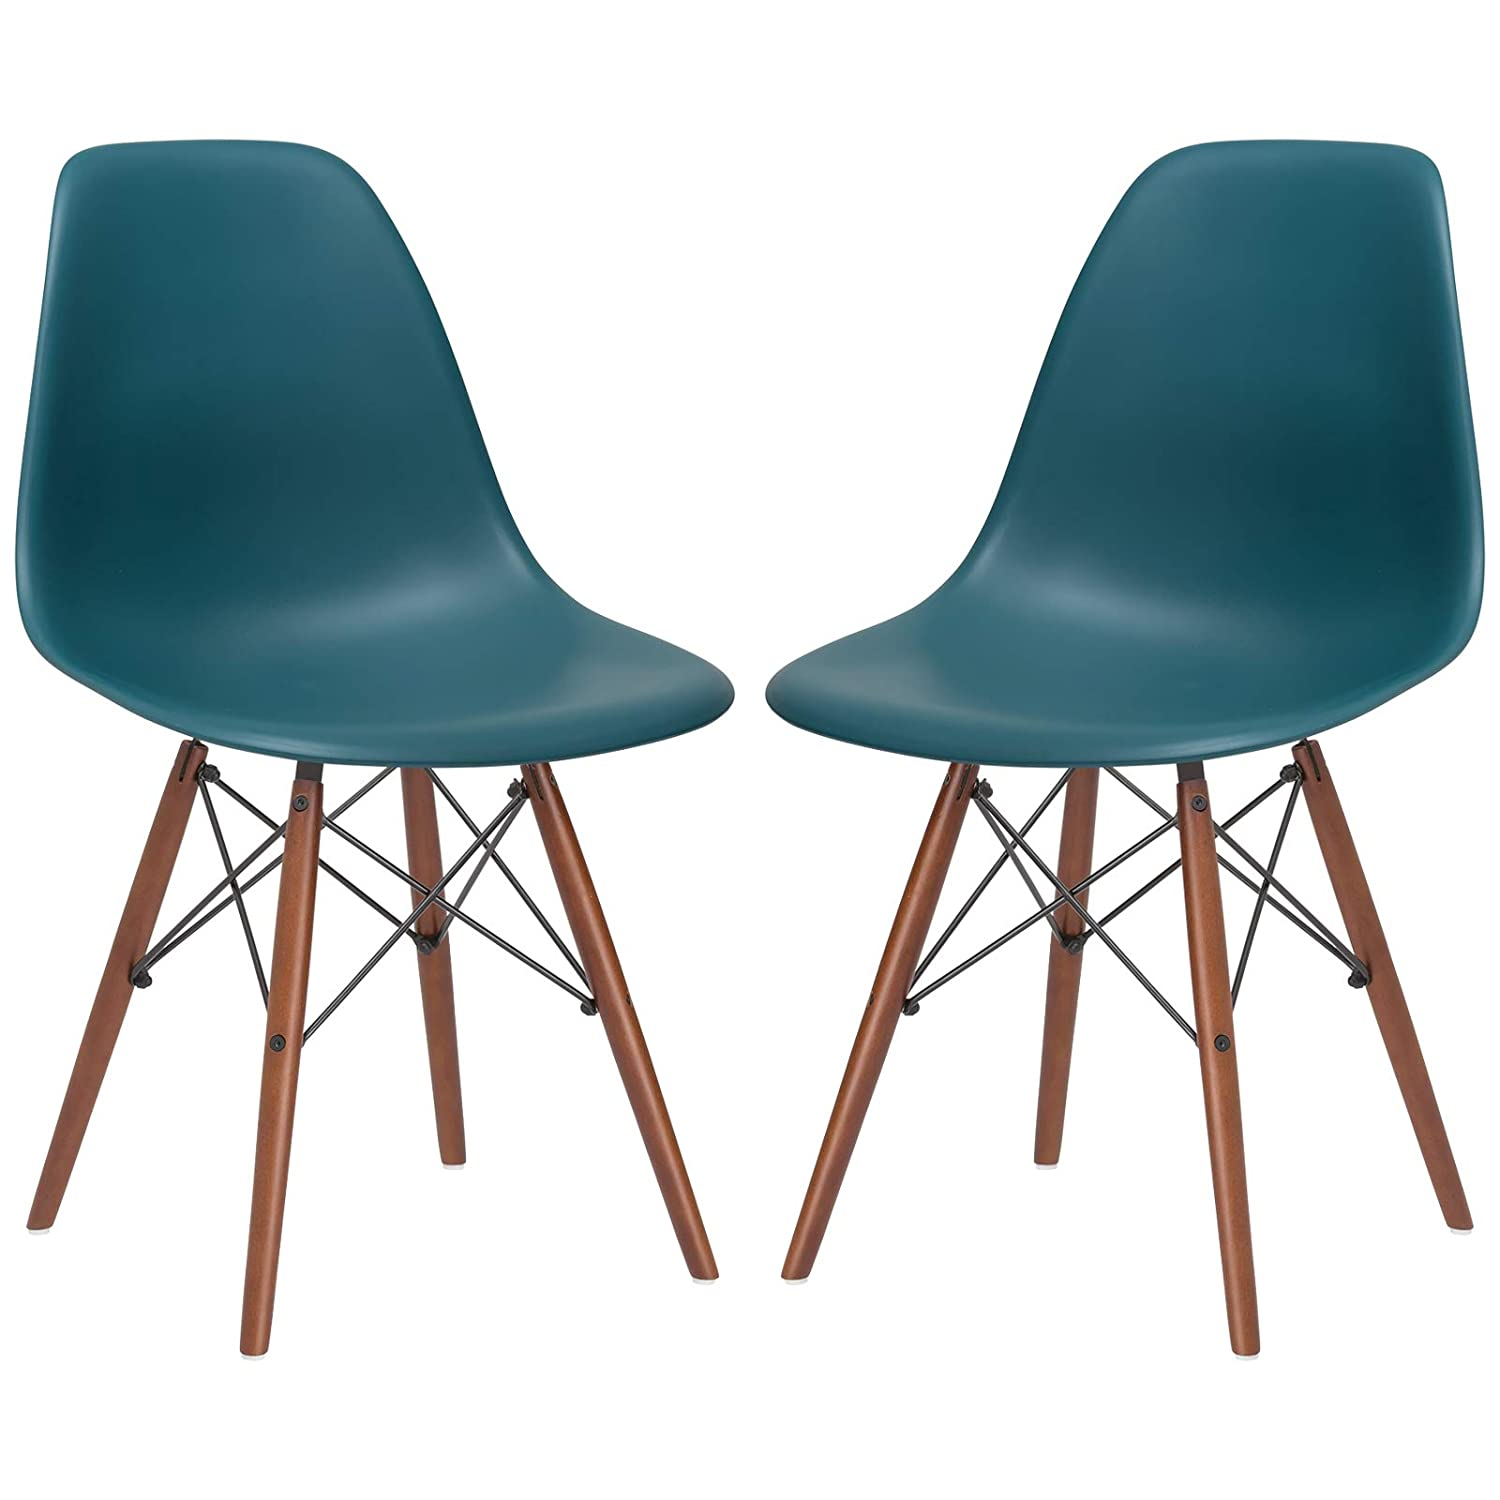 Poly and Bark Vortex Modern Mid-Century Side Chair with Wooden Walnut Legs for Kitchen, Living Room and Dining Room, Teal Set of 2